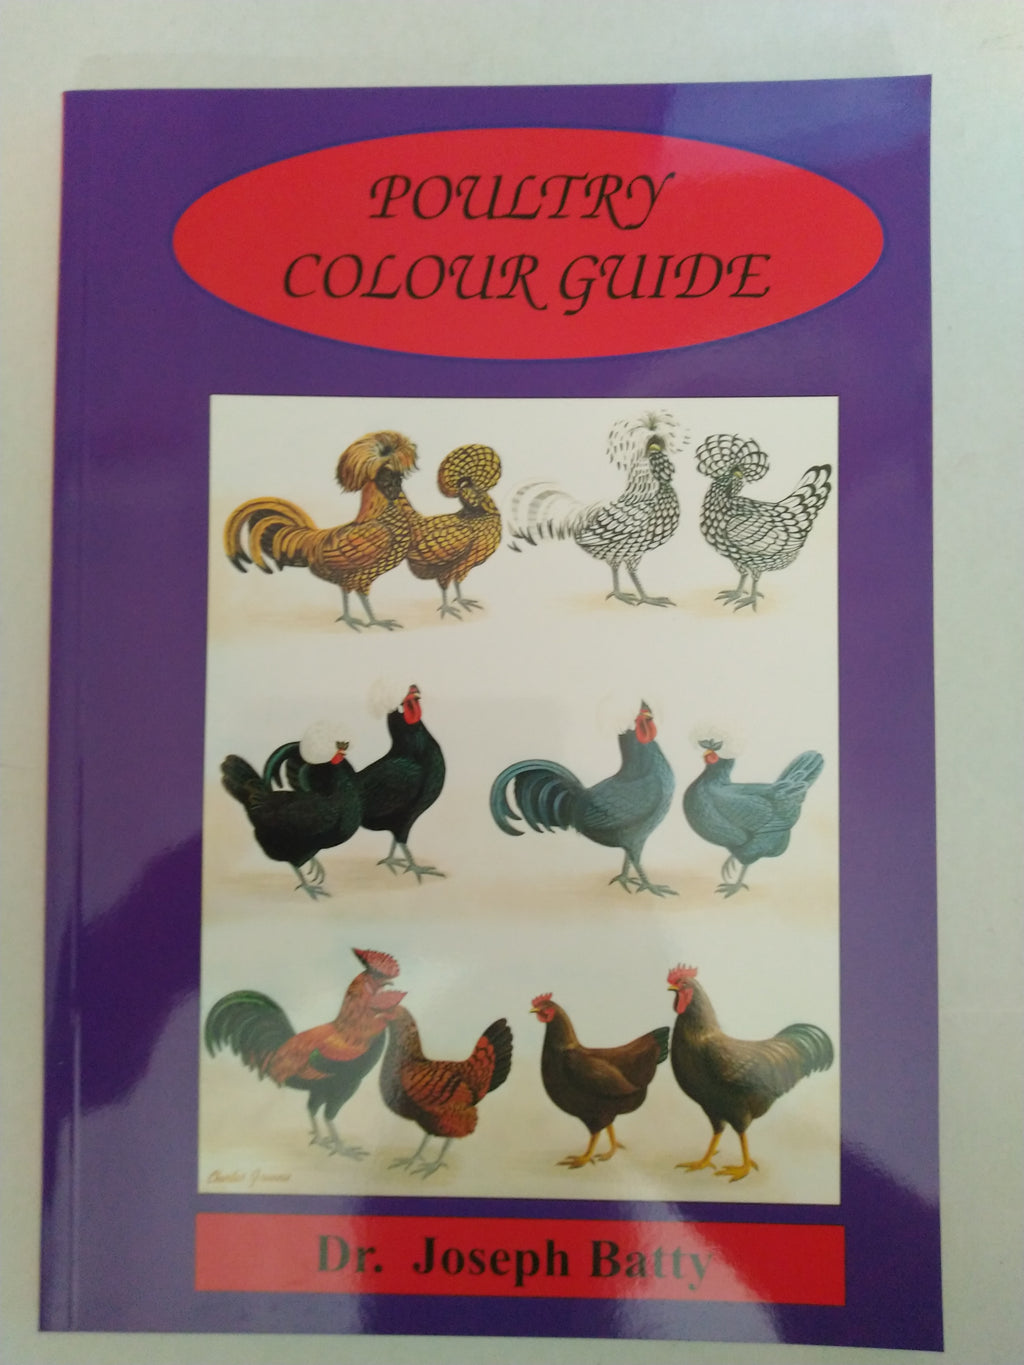 The Poultry Colour Guide by Dr. Joseph Batty New Edition 2001